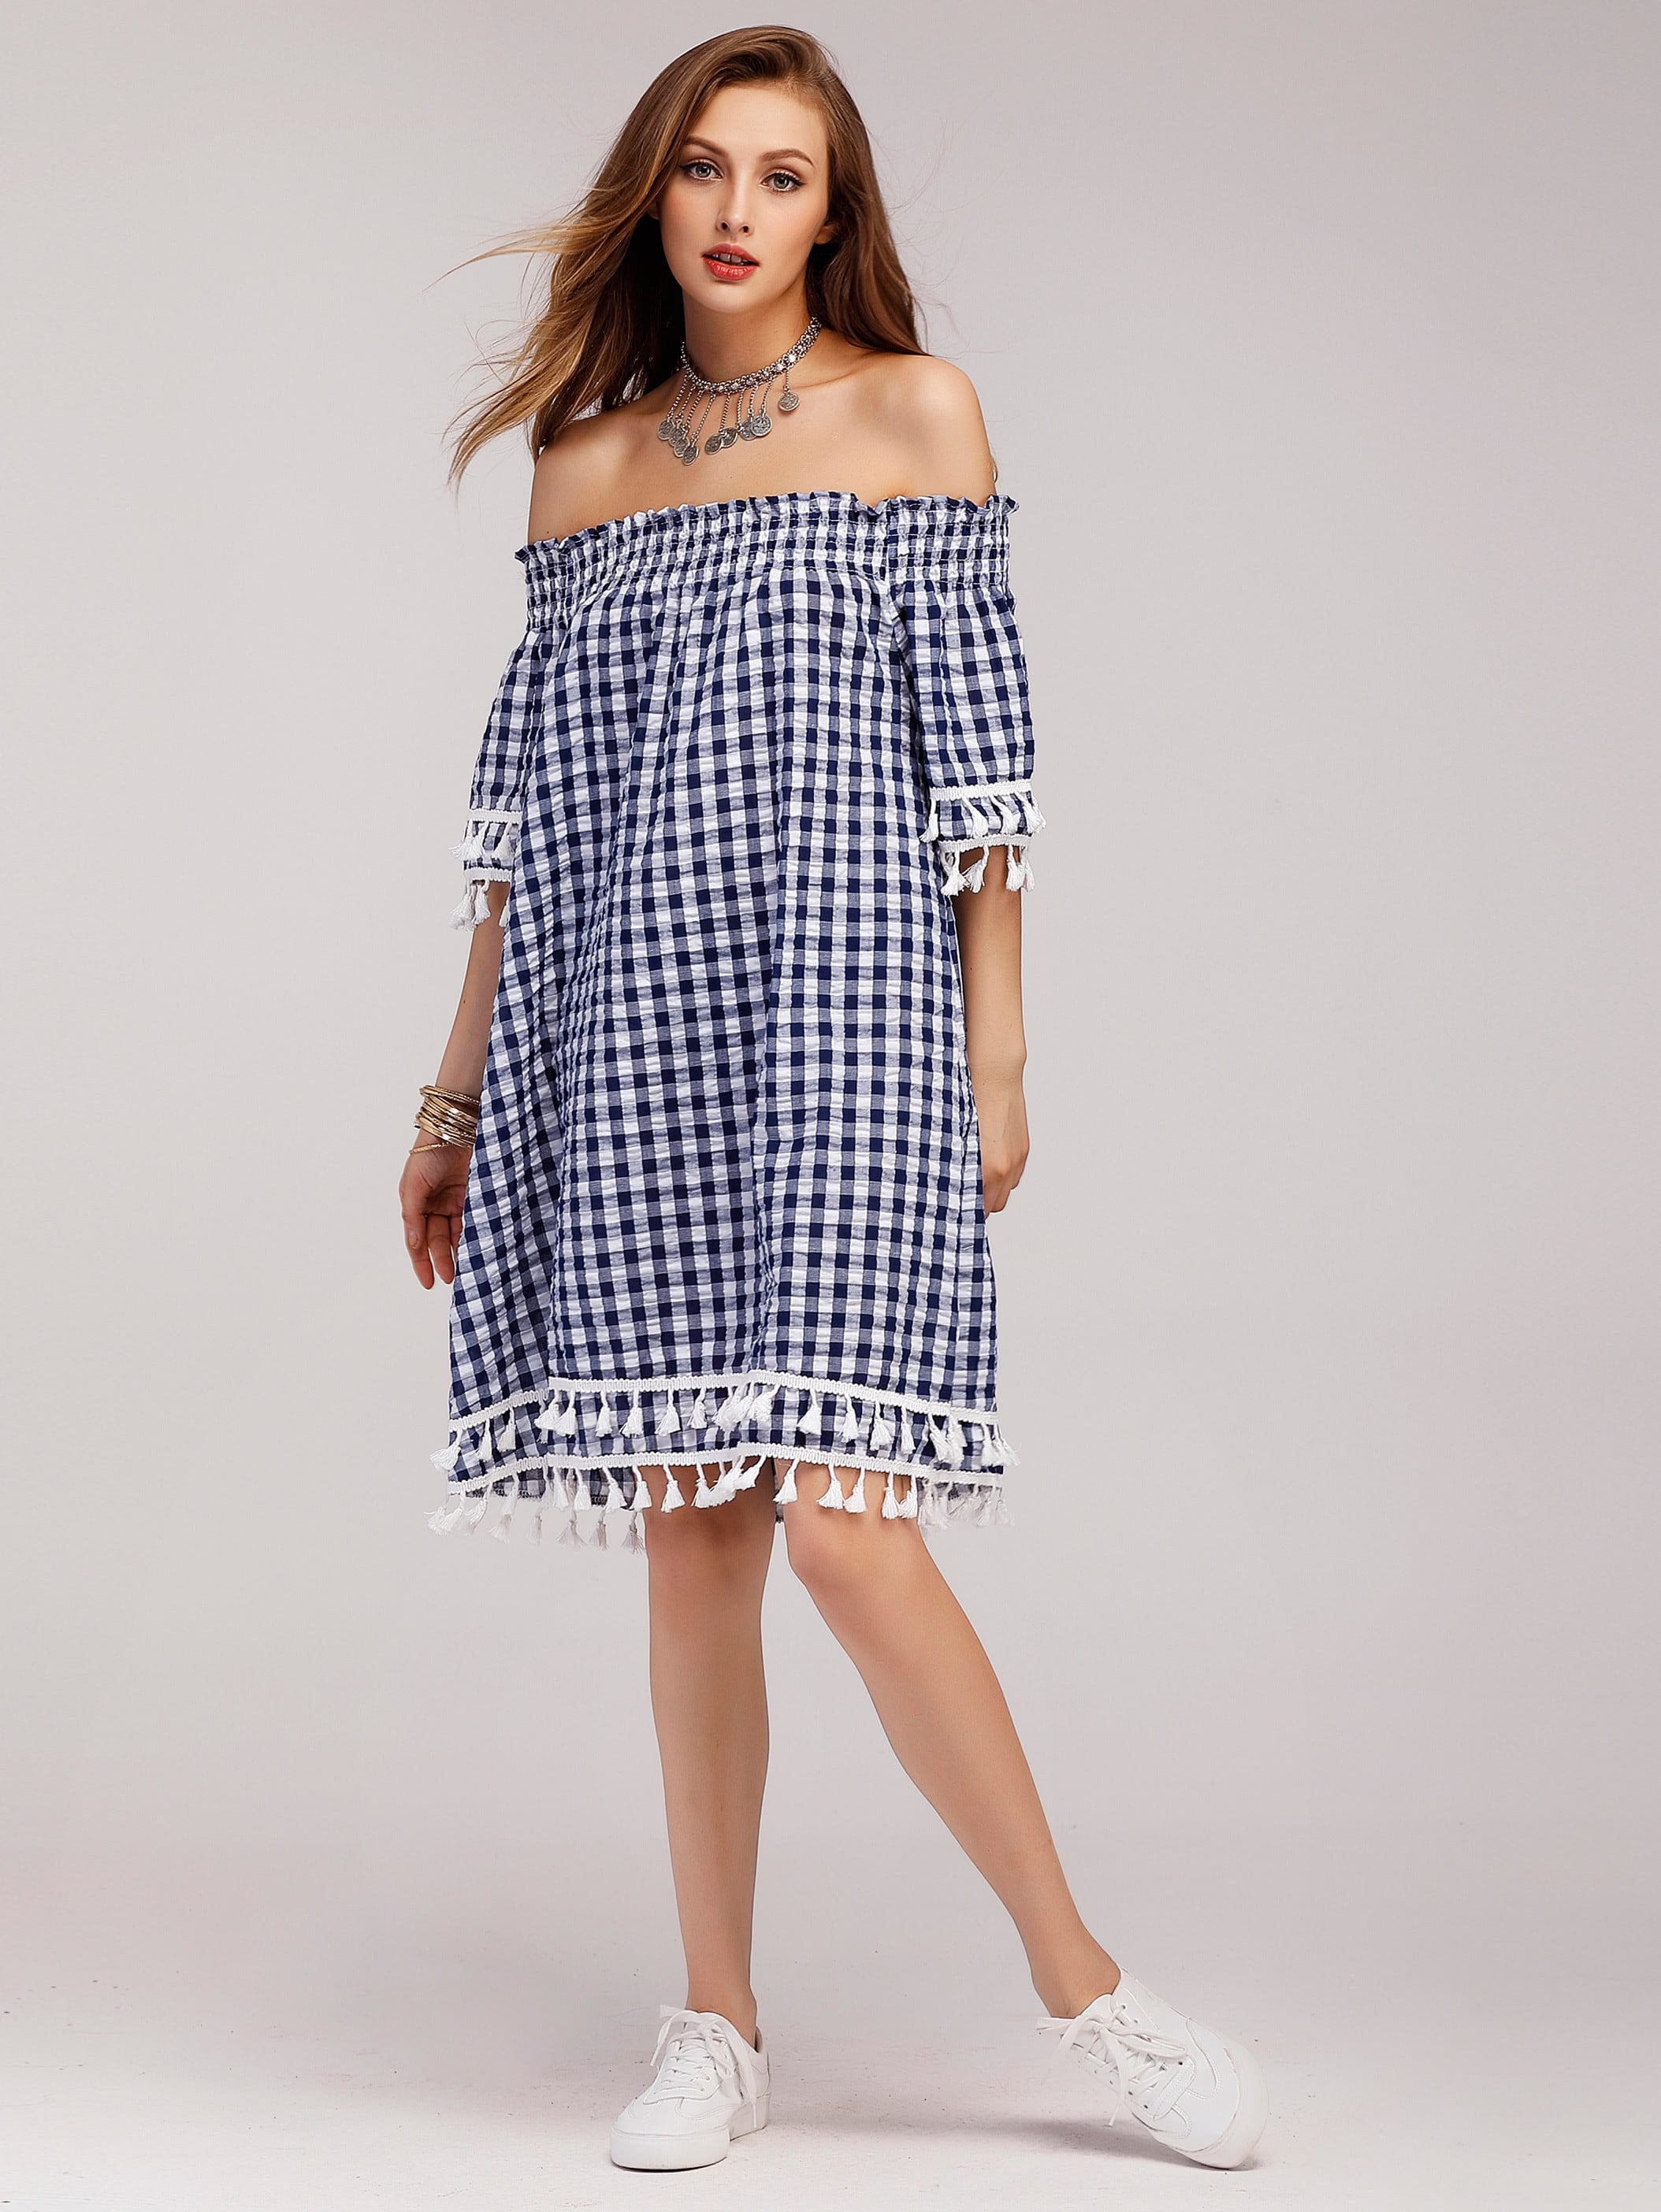 Gingham Off Shoulder Tiered Tassel Trim Dress off shoulder tassel trim beach dress